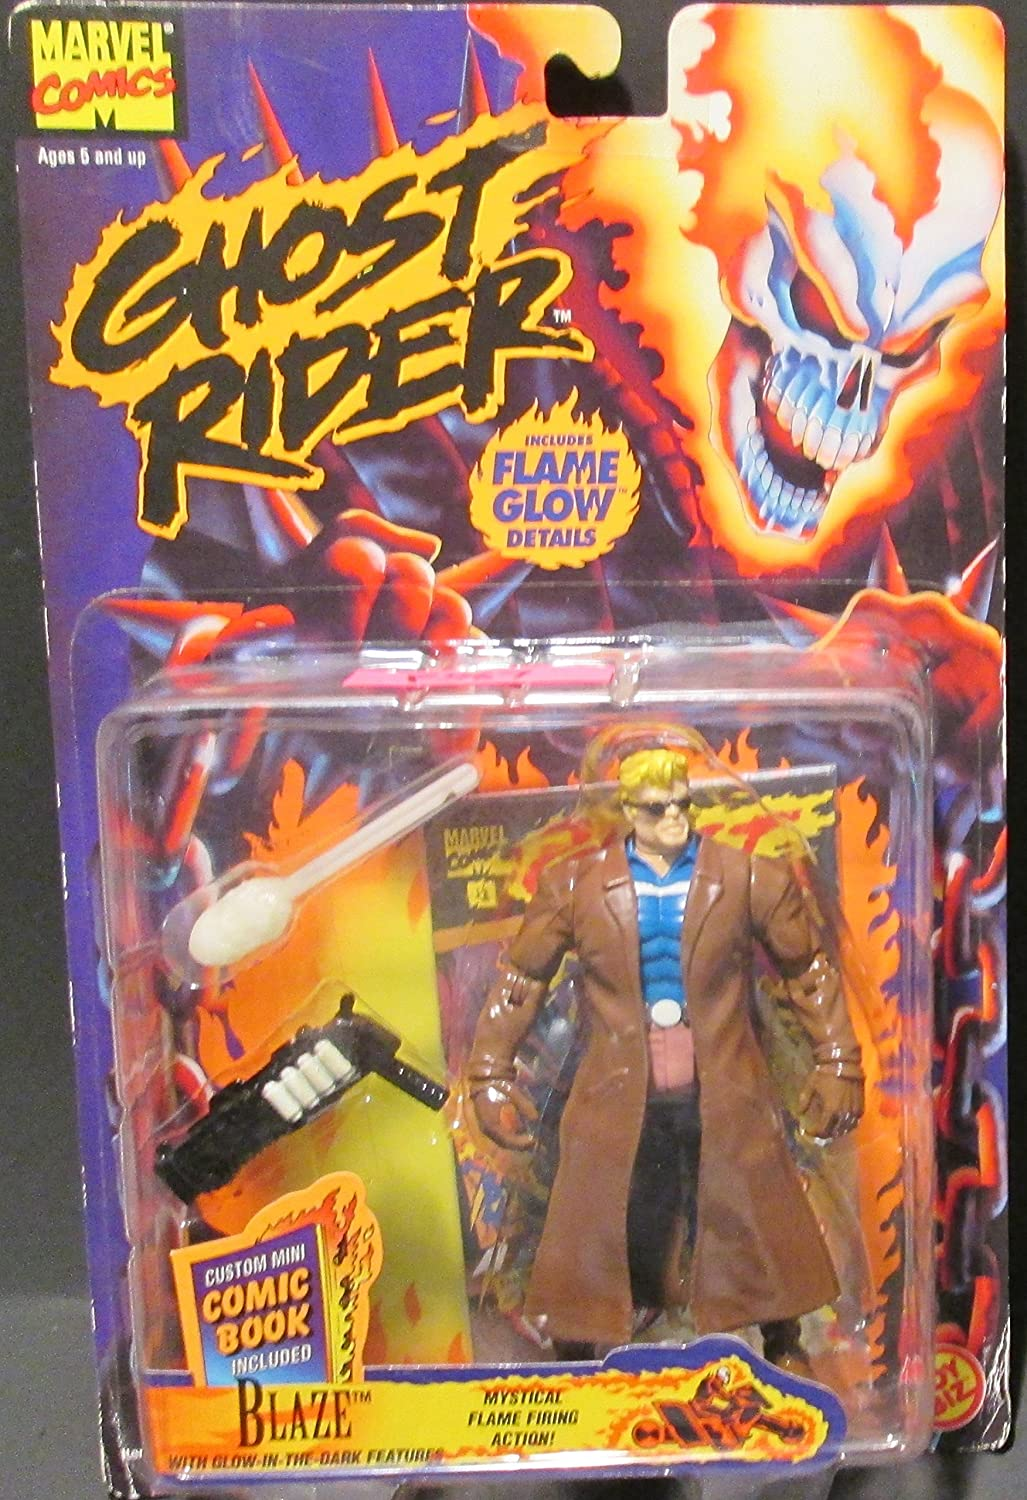 Flame Glow Details* 1995 Marvel Comics Ghost Rider Action Figure /& Mini Comic Book BLAZE with Mystical Flame Firing Action